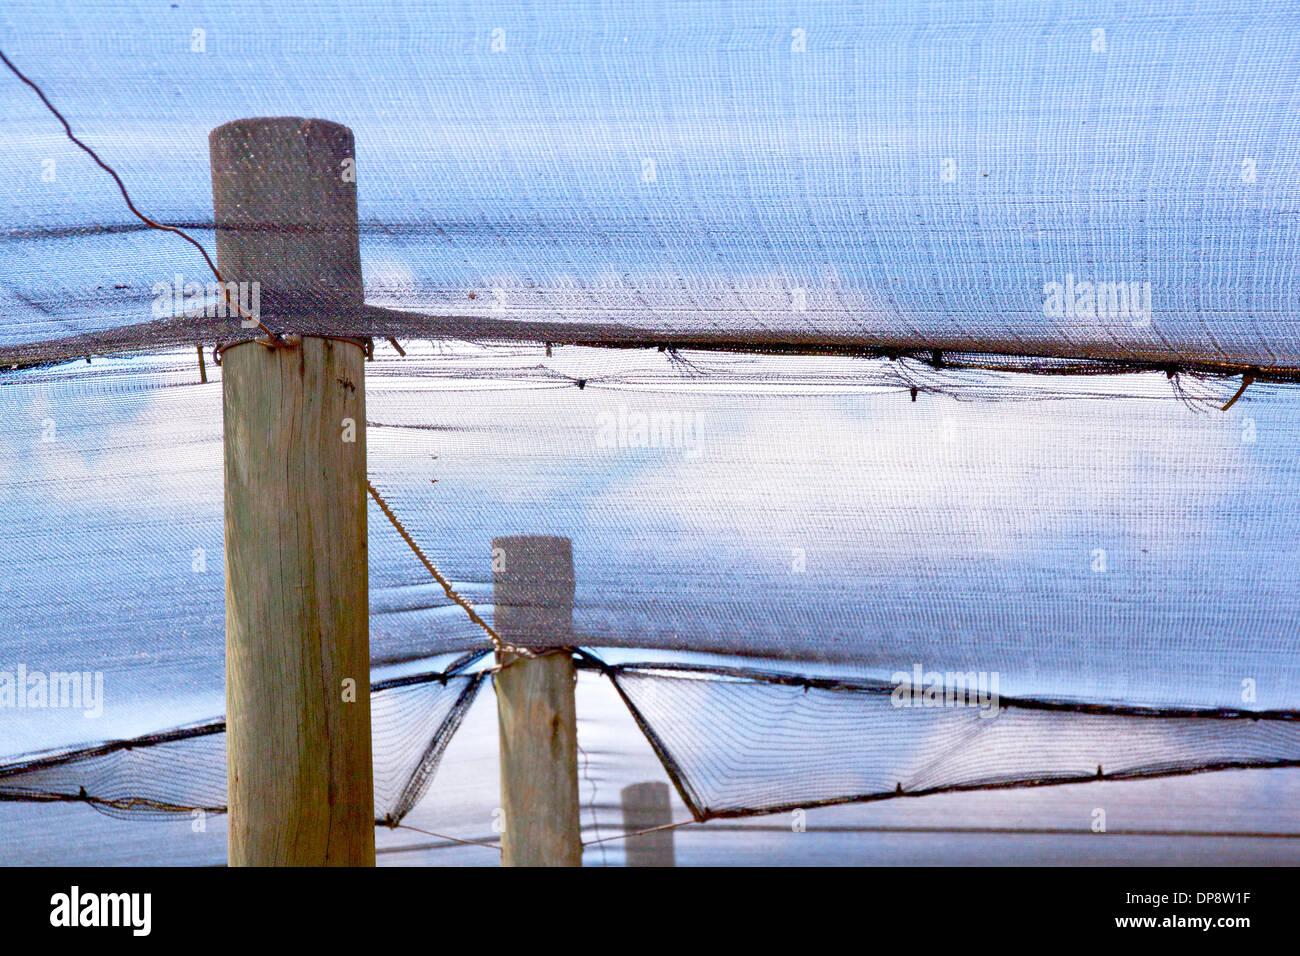 wooden poles supporting shade cloth for protection of seedlings - Stock Image